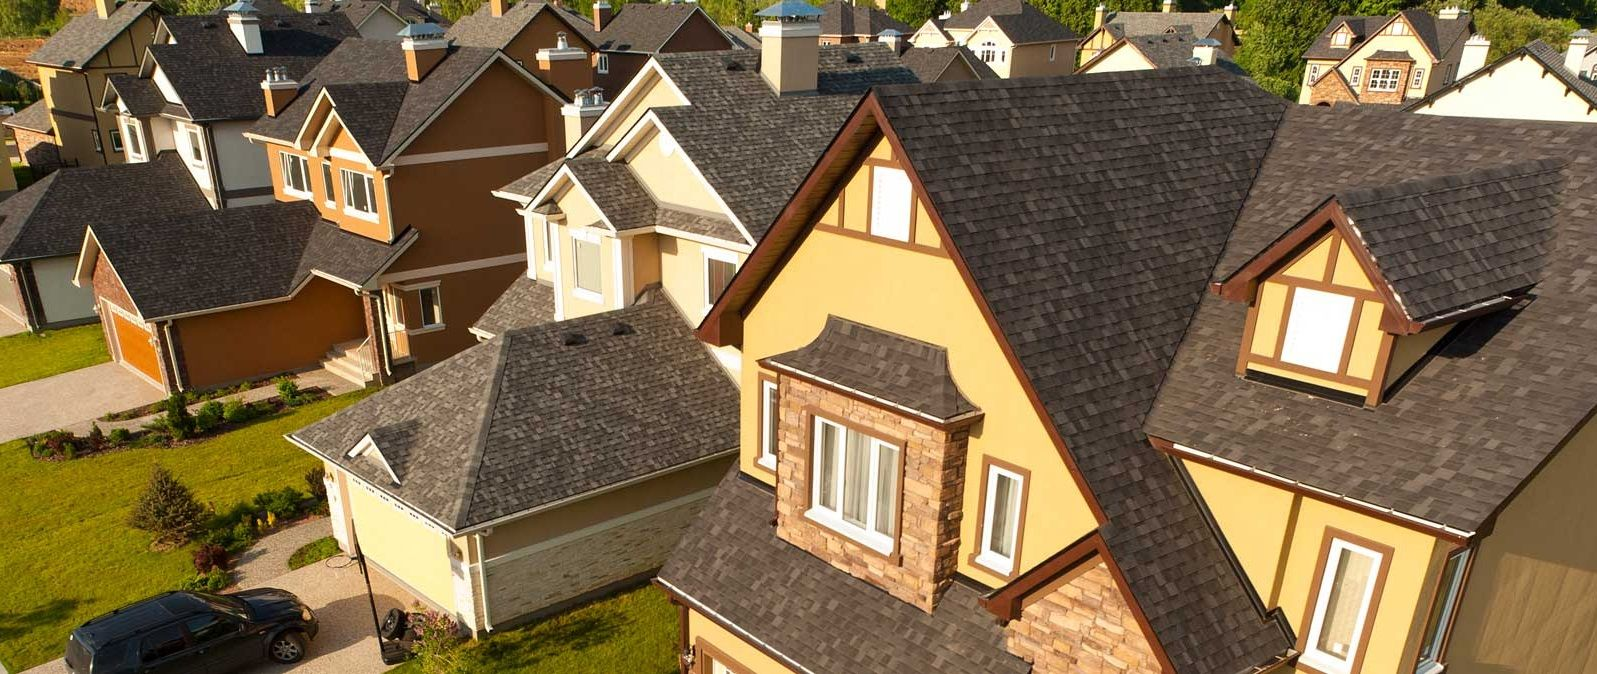 Top 10 Best USA Home Insurance Companies in 2019 Best